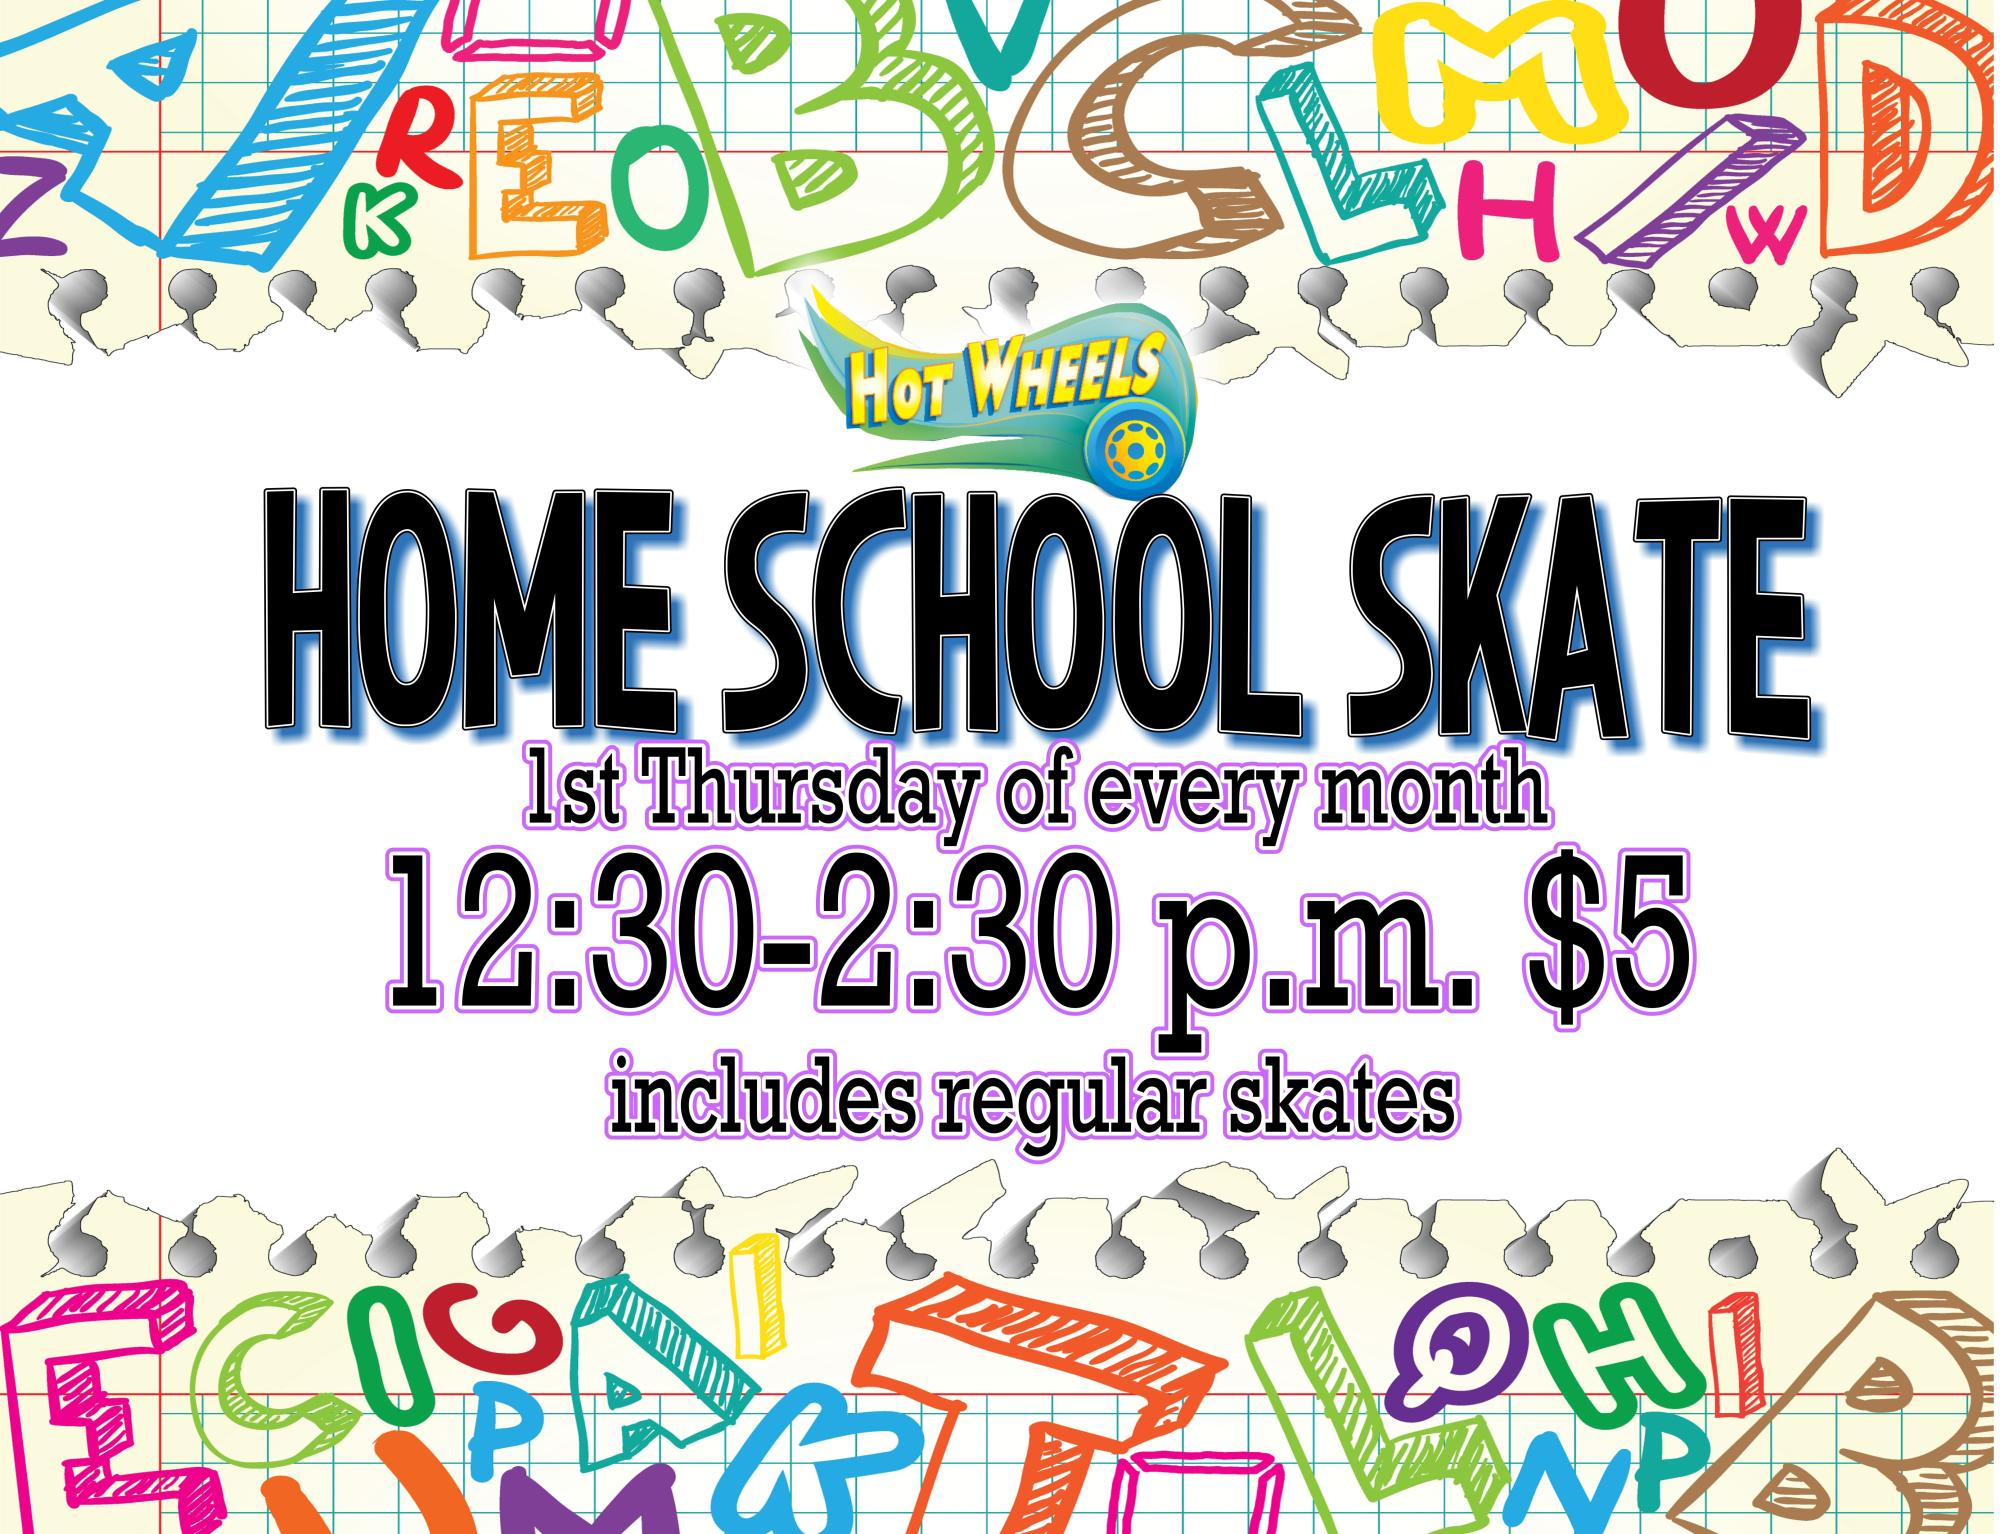 homeschoolskatesign.jpeg